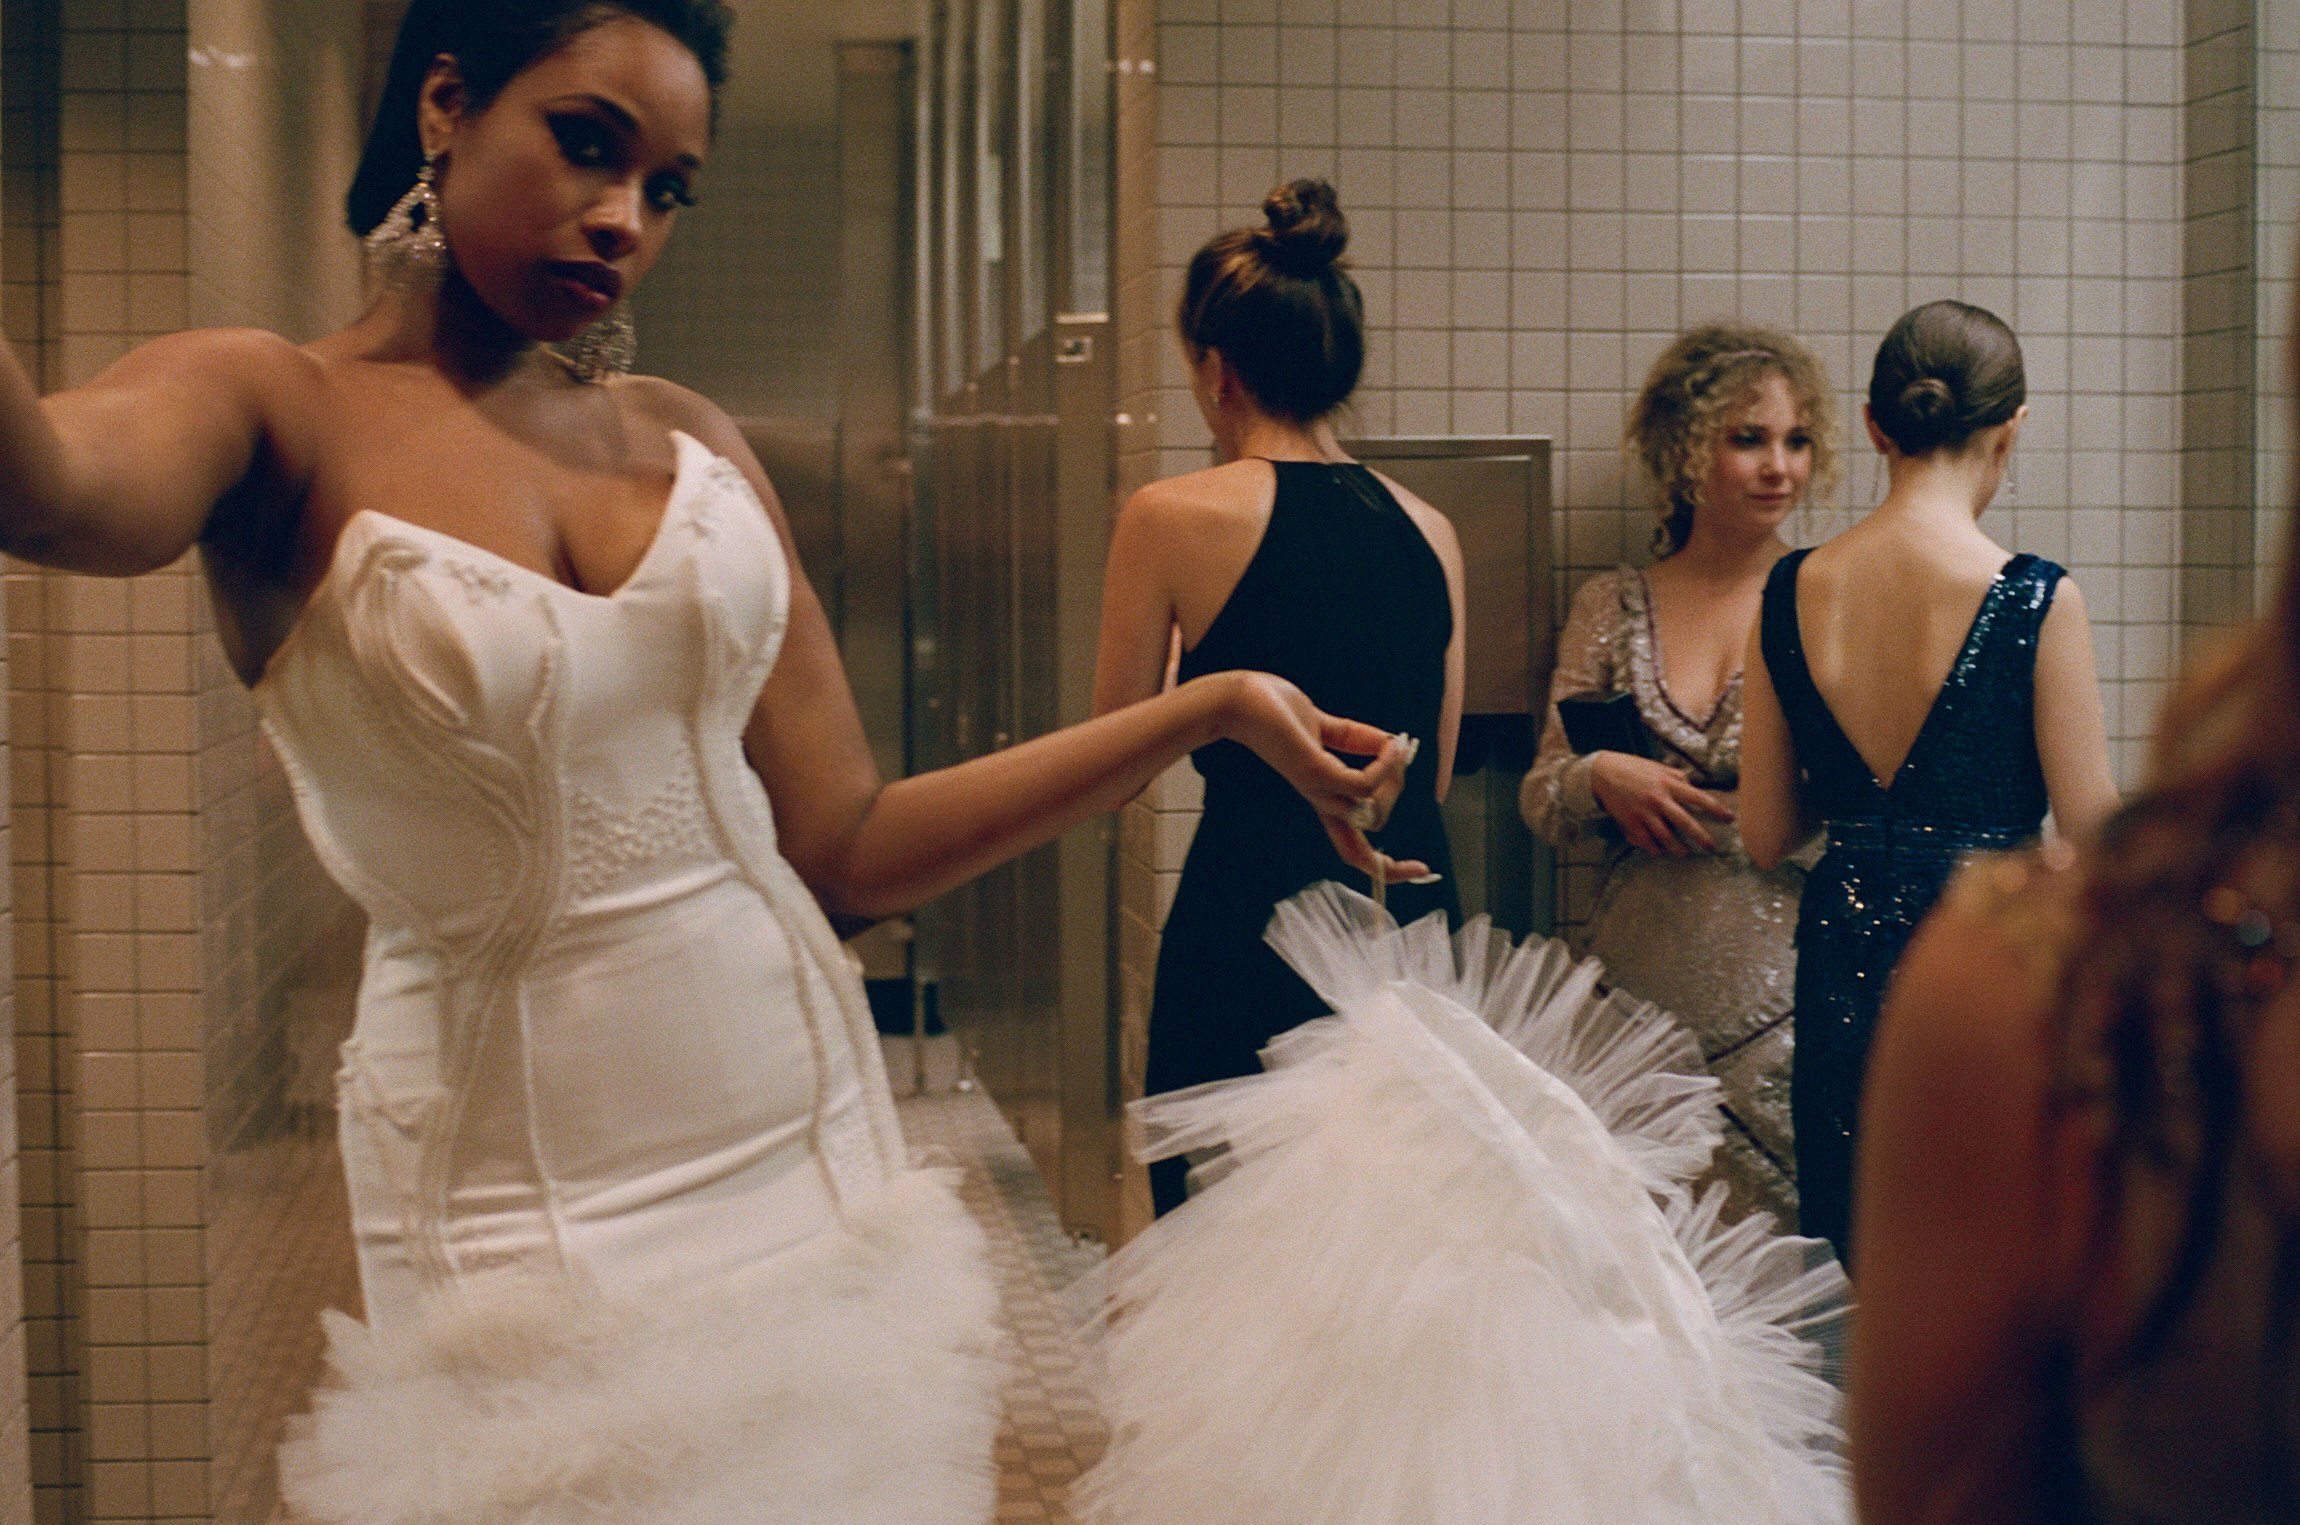 Photos of girl without any cloth in bathroom - Cass Bird Photographs The Ladies Bathroom At The Met Gala 2016